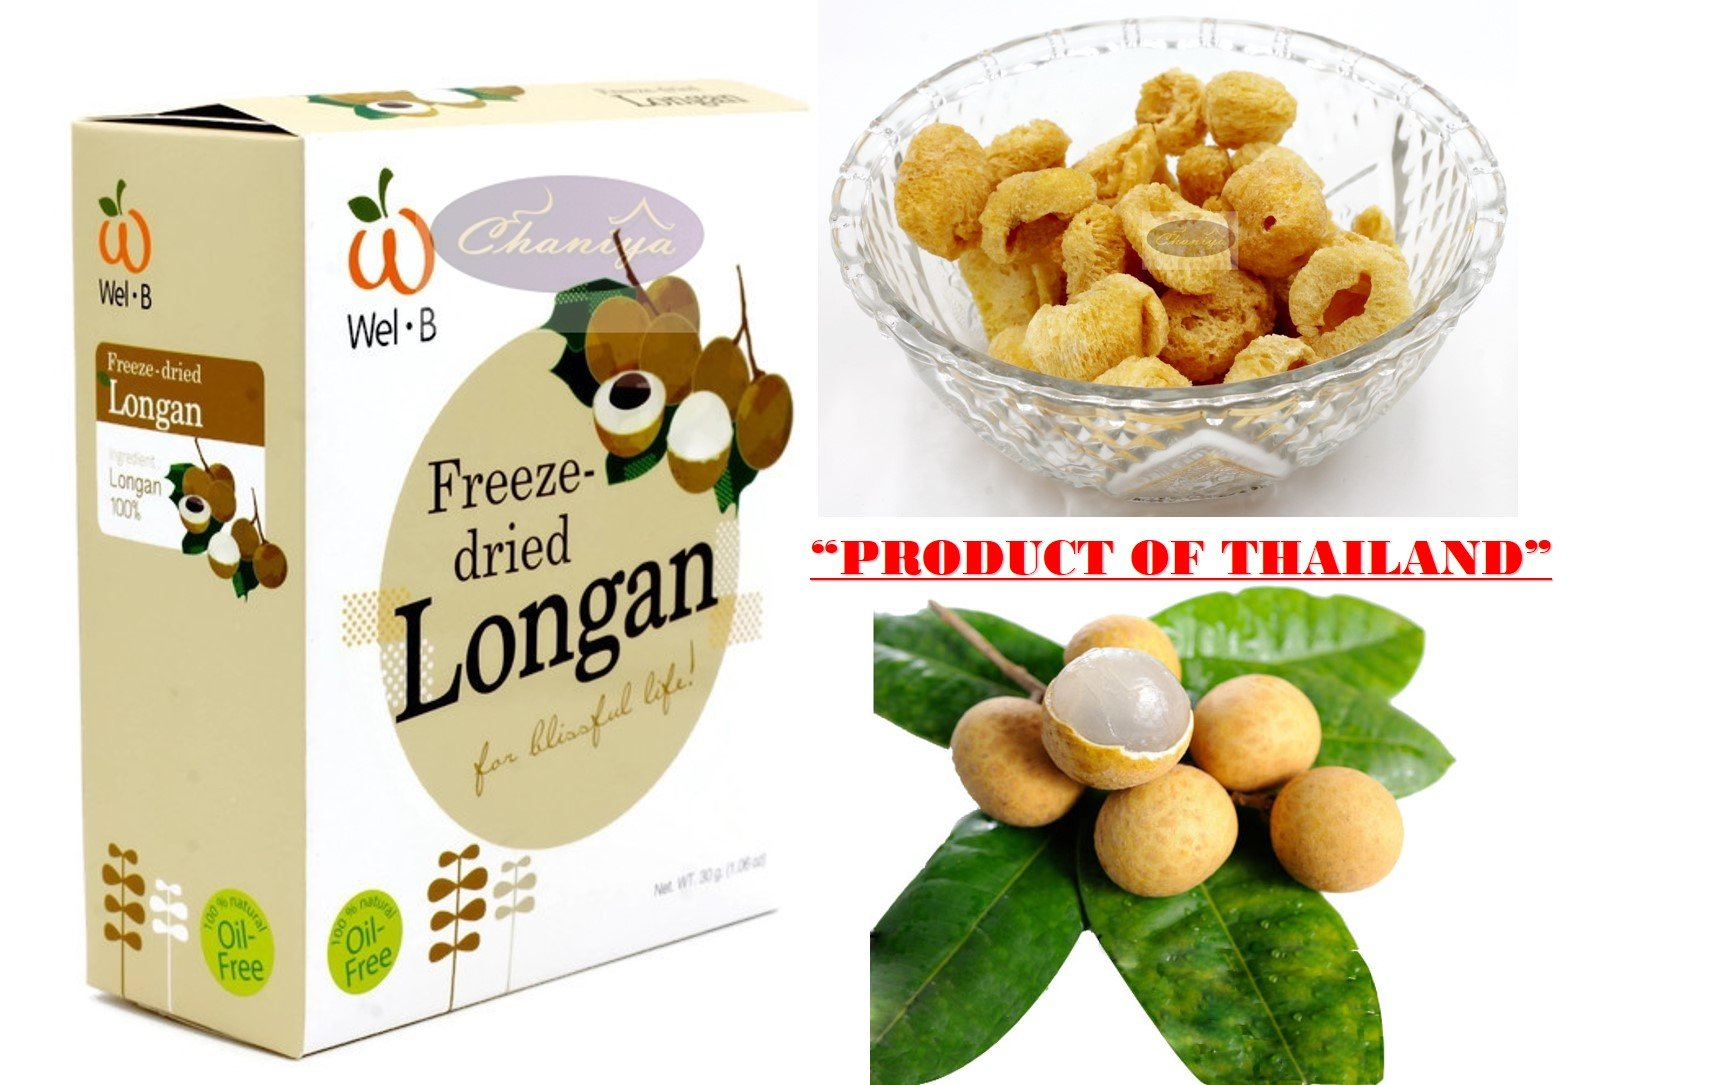 Crispy freeze dried fruit Longan Healthy Snack 100% all Natural Oil-Free 30 g. (1.06 Oz) by Freeze Dried Fruits